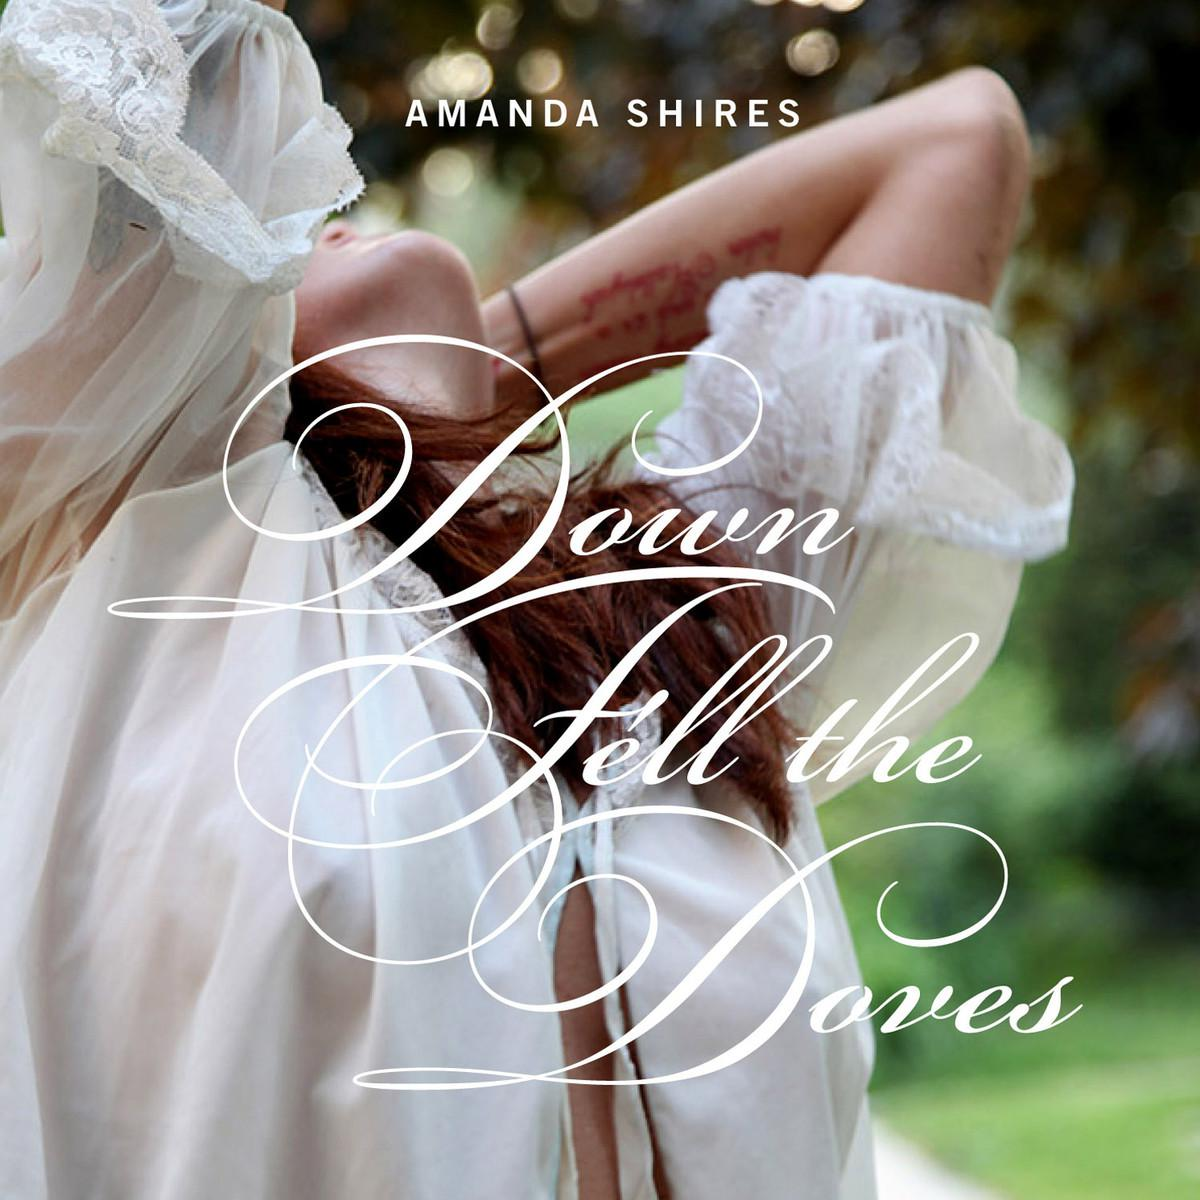 Amanda Shires - Down Fell The Doves (2013) [MULTI]